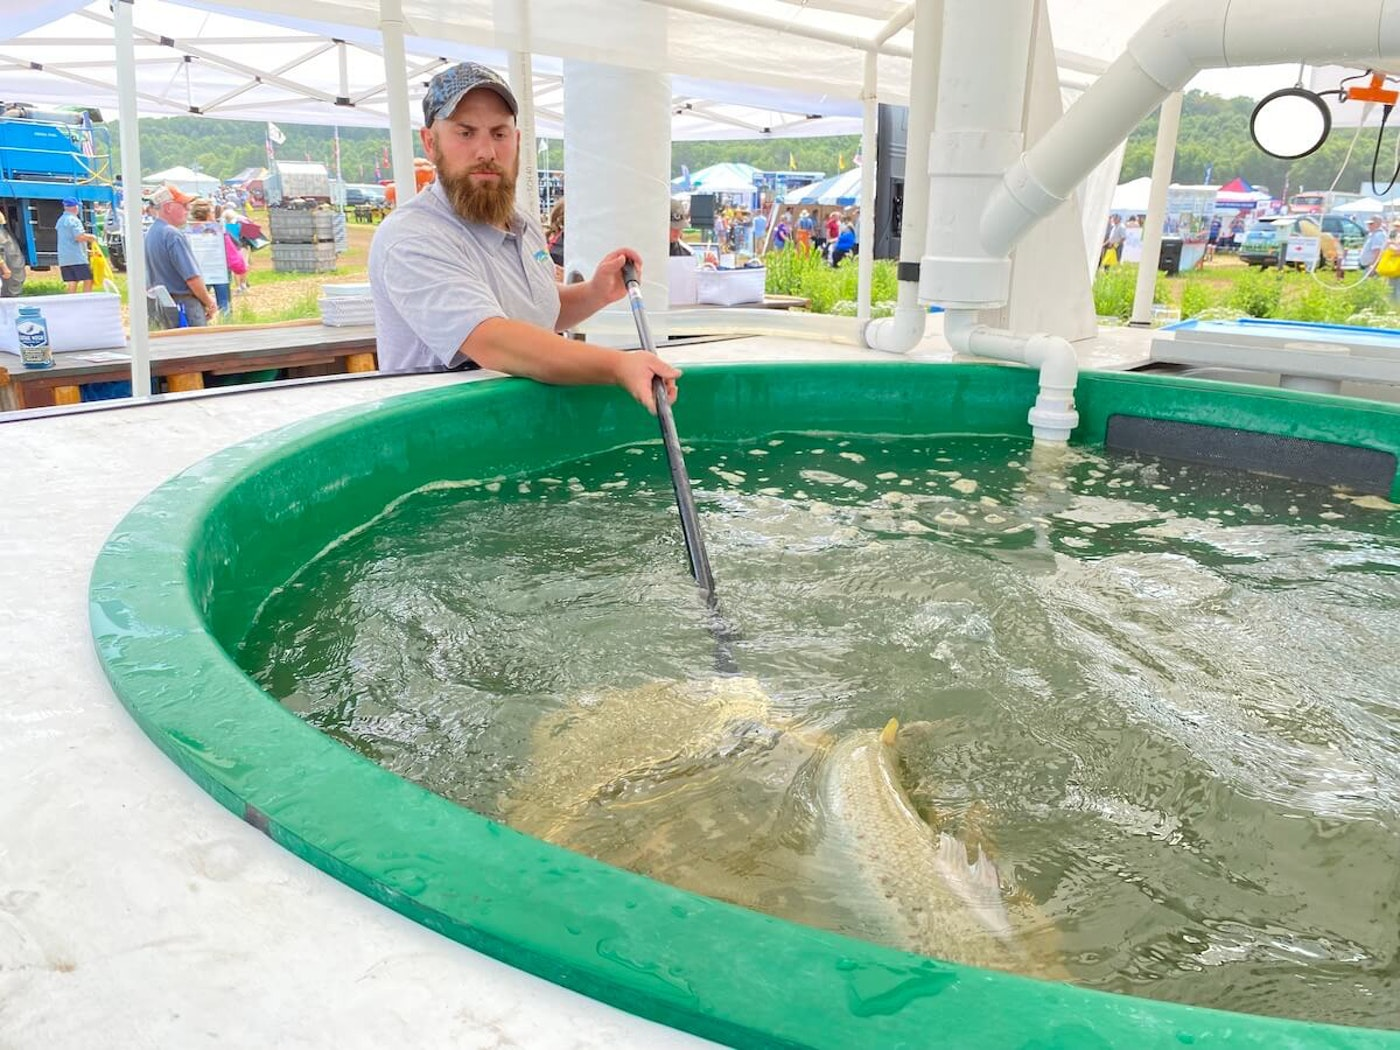 Eric Brandt, assistant aquaculture manager for Superior Fresh, lifts two Atlantic salmon from a pool at the company's exhibit at Wisconsin Farm Technology Days in Eau Claire County. Superior Fresh, a business near Hixton that raises organic greens and Atlantic salmon, is among agriculture operations in Wisconsin that are using environmentally friendly practices to produce products. (Photo by Julian Emerson)